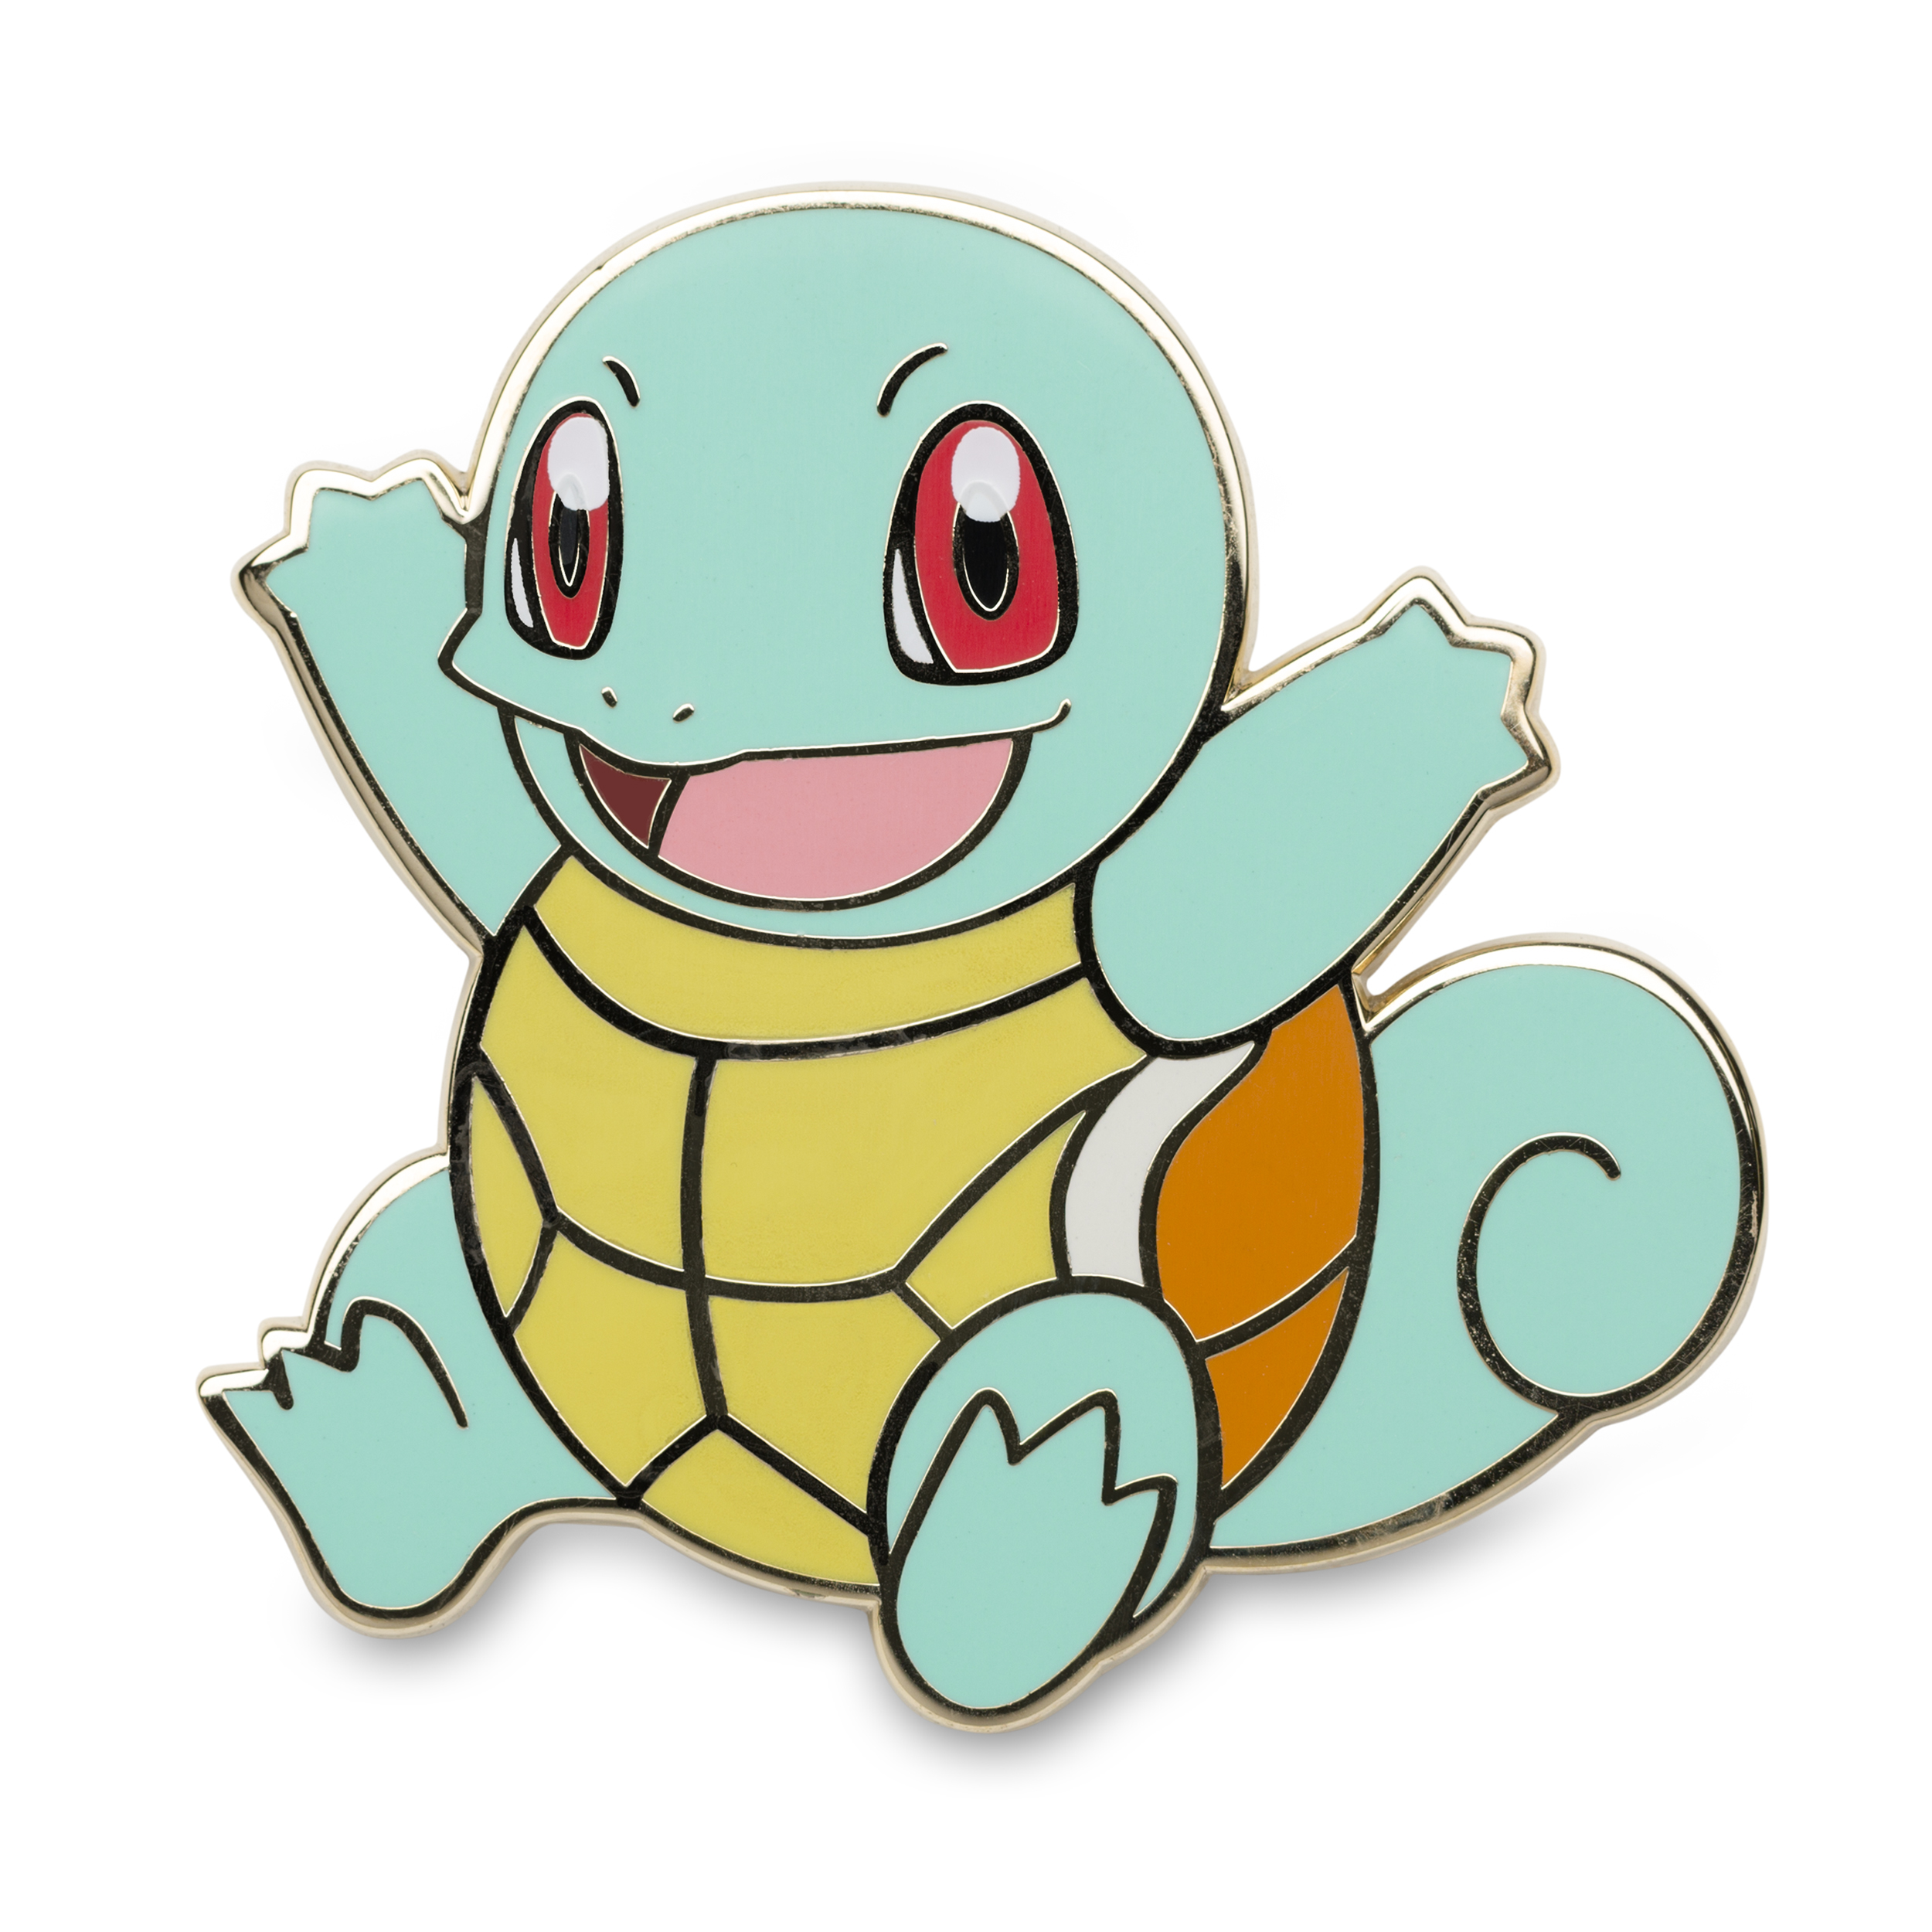 2500x2500 Pikachu Clipart Squirtle